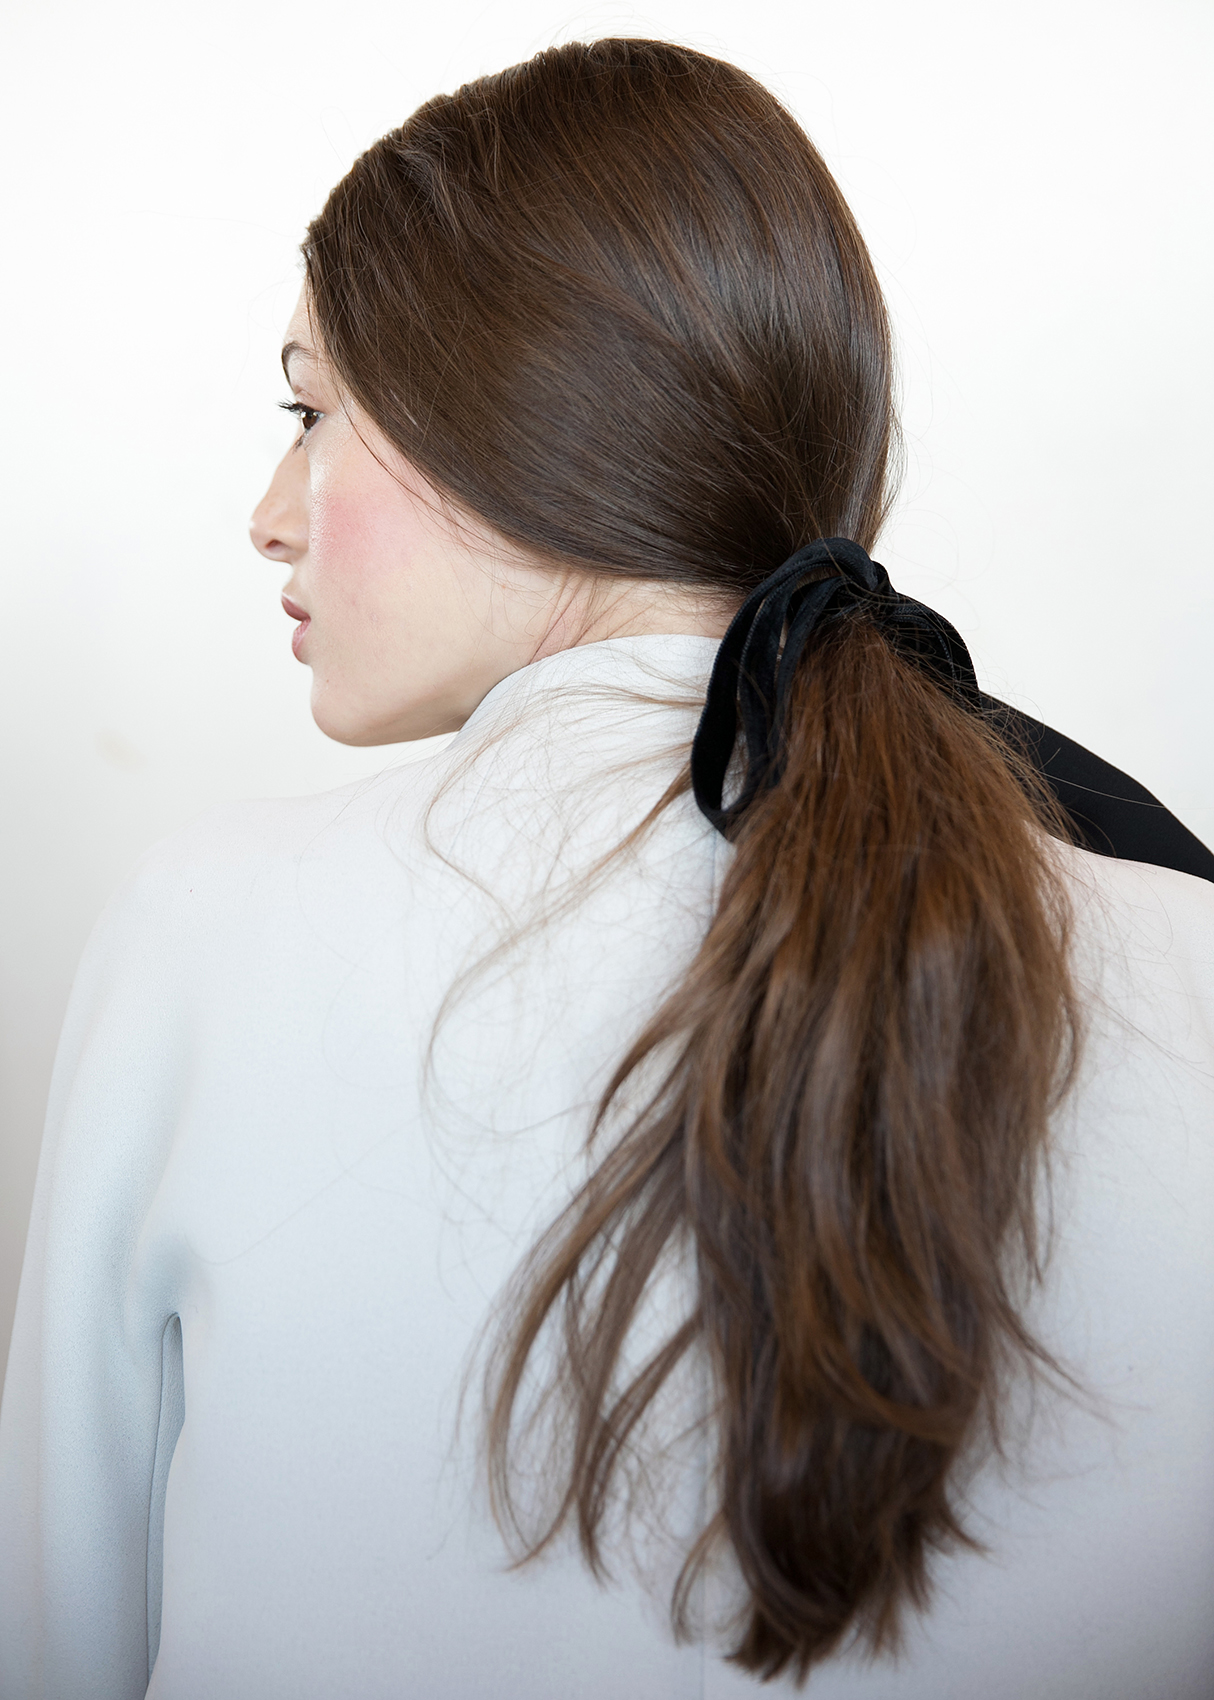 Ponytail from Kate Spade Fashion Week 2016